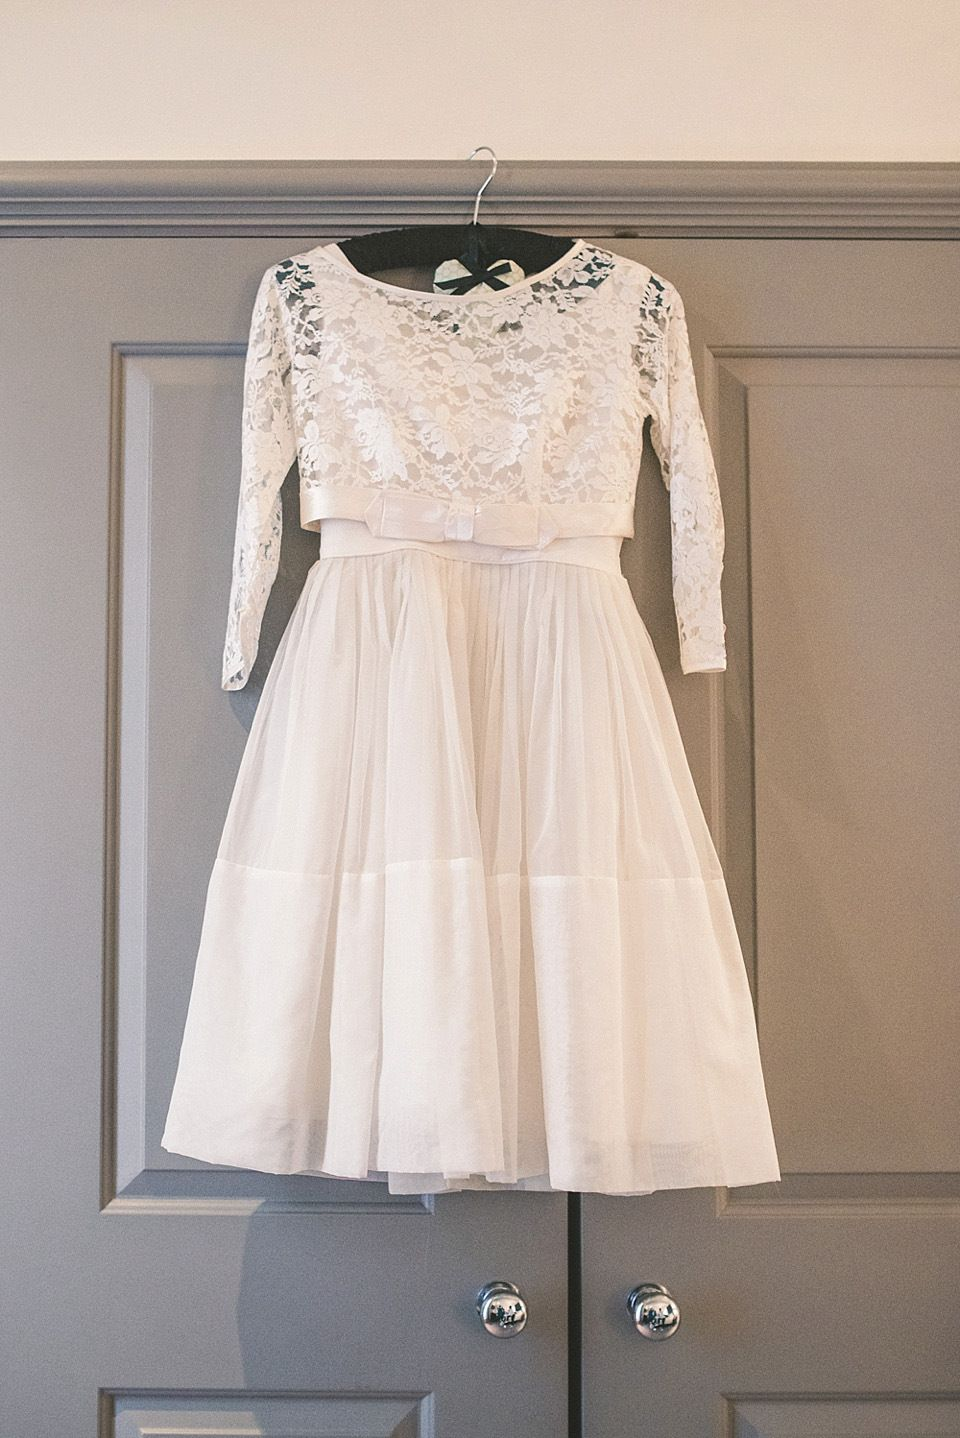 60s wedding dress  A us Vintage Frock and Fur Stole for a Relaxed Camden Pub Wedding